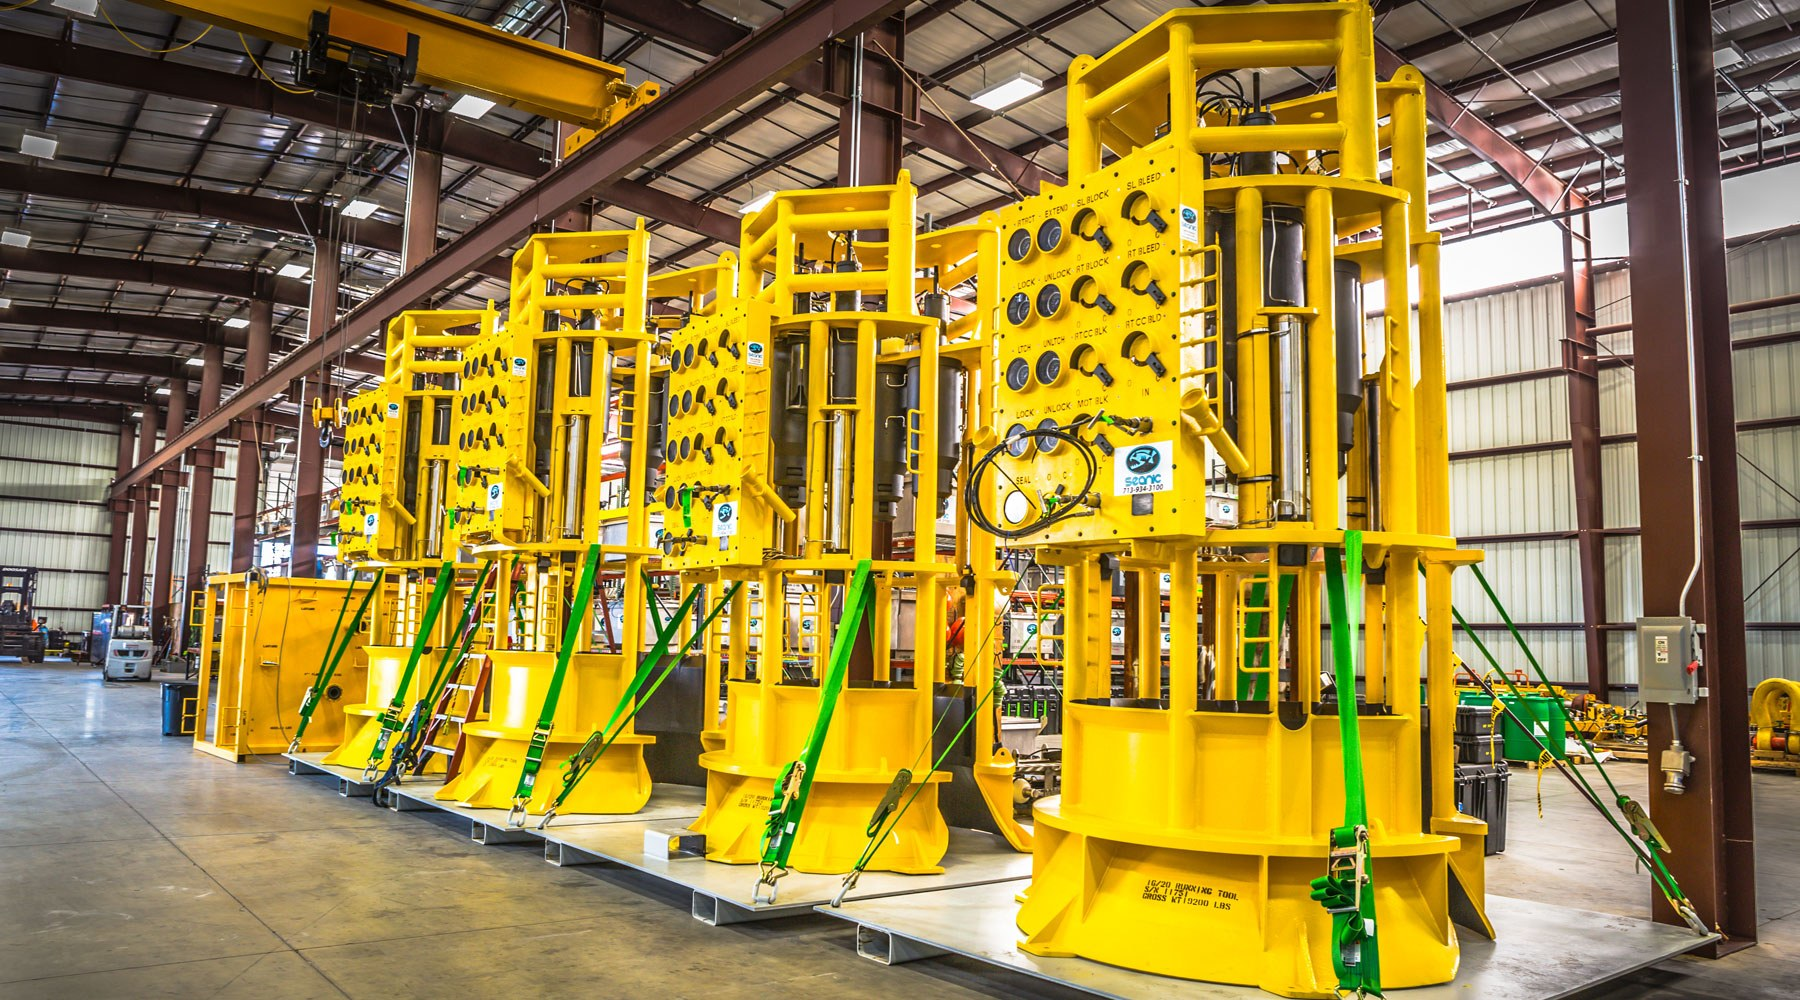 Image of four large pieces of subsea equipment